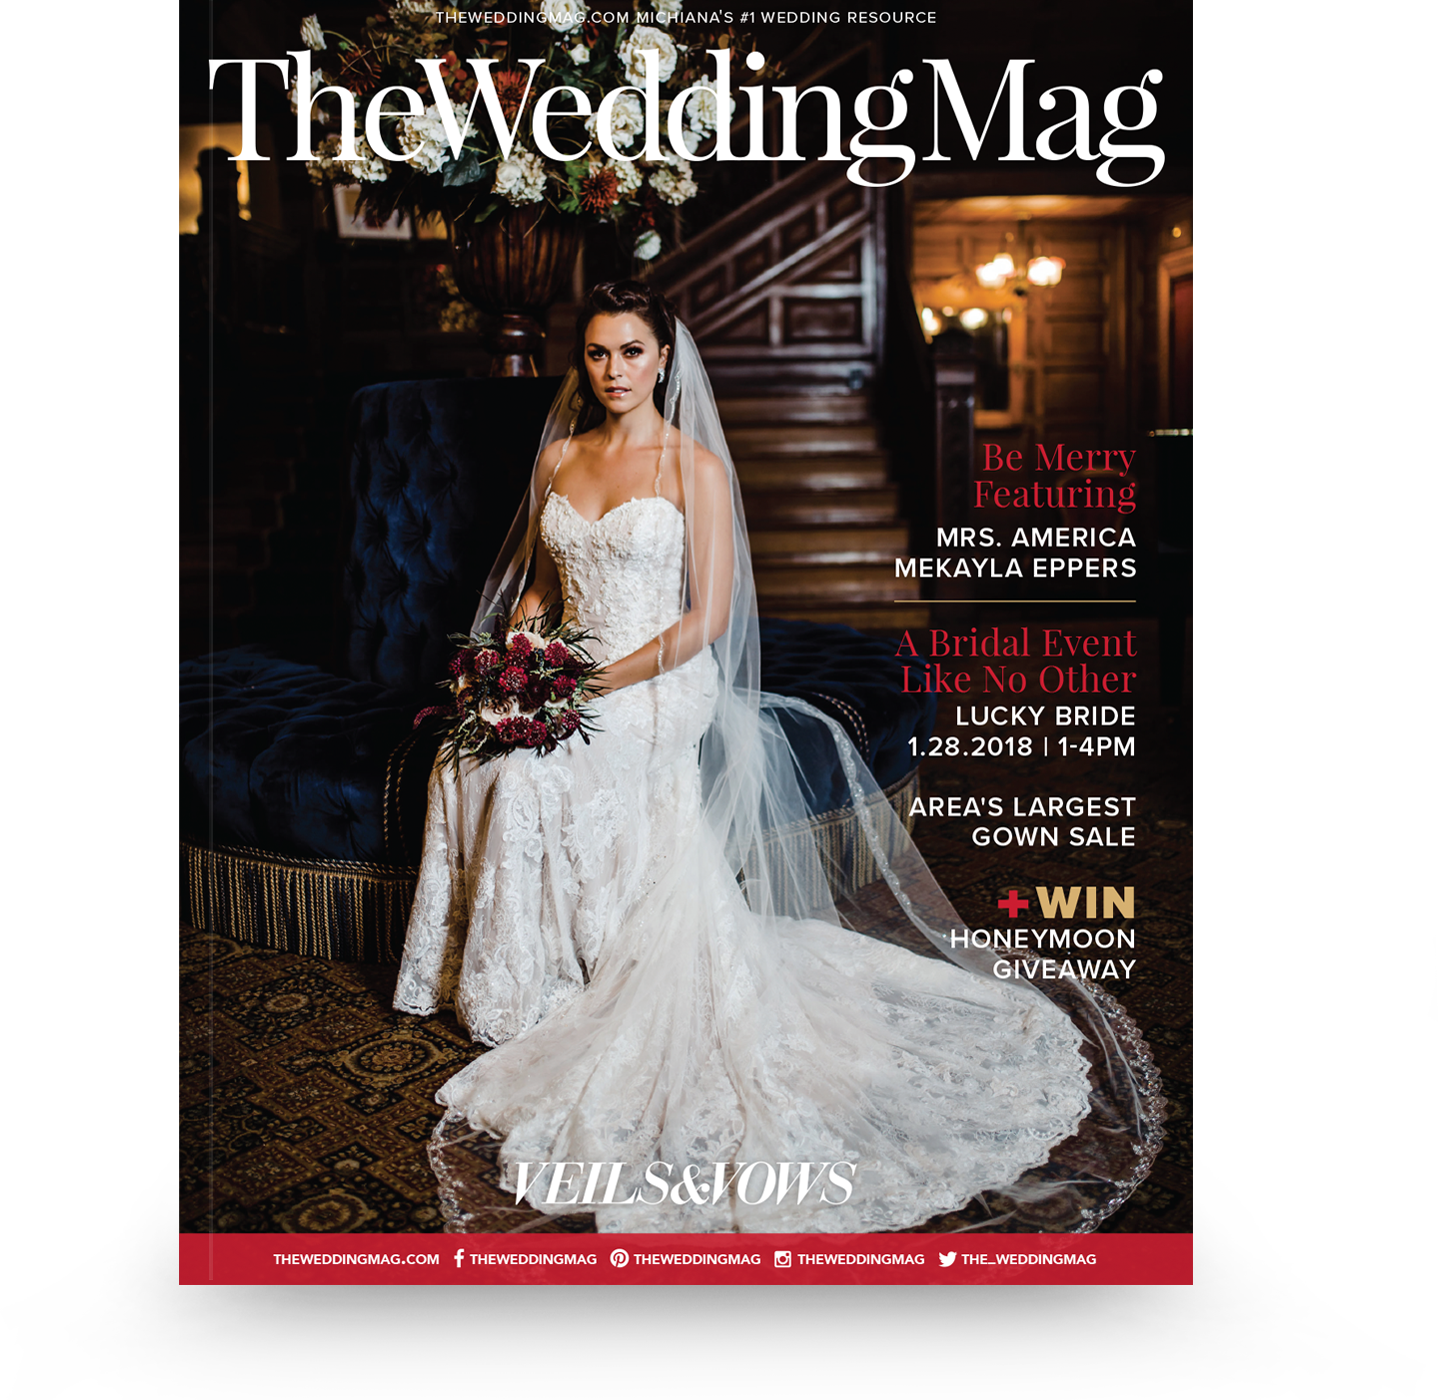 Veils & Vows Archives | The Wedding Mag